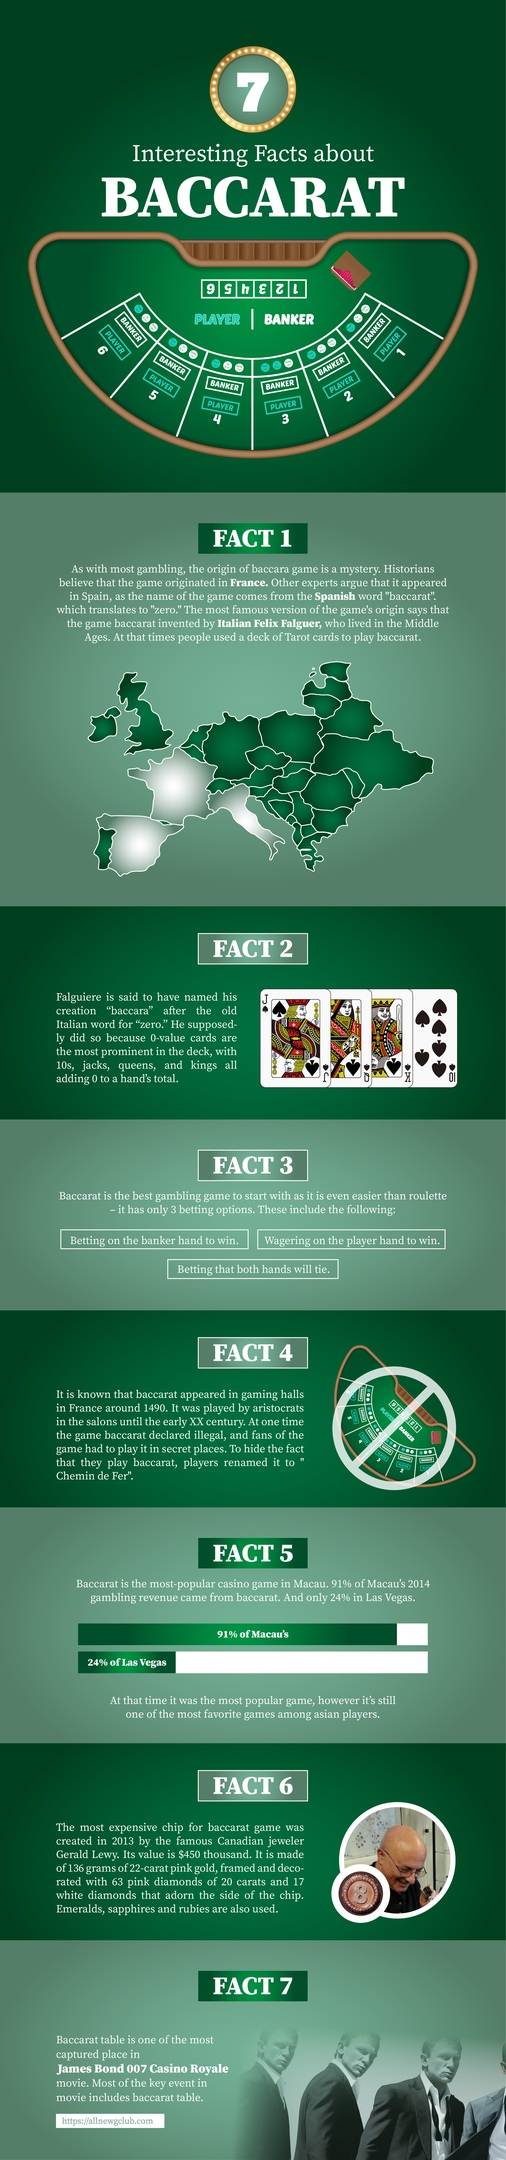 Baccarat infographic